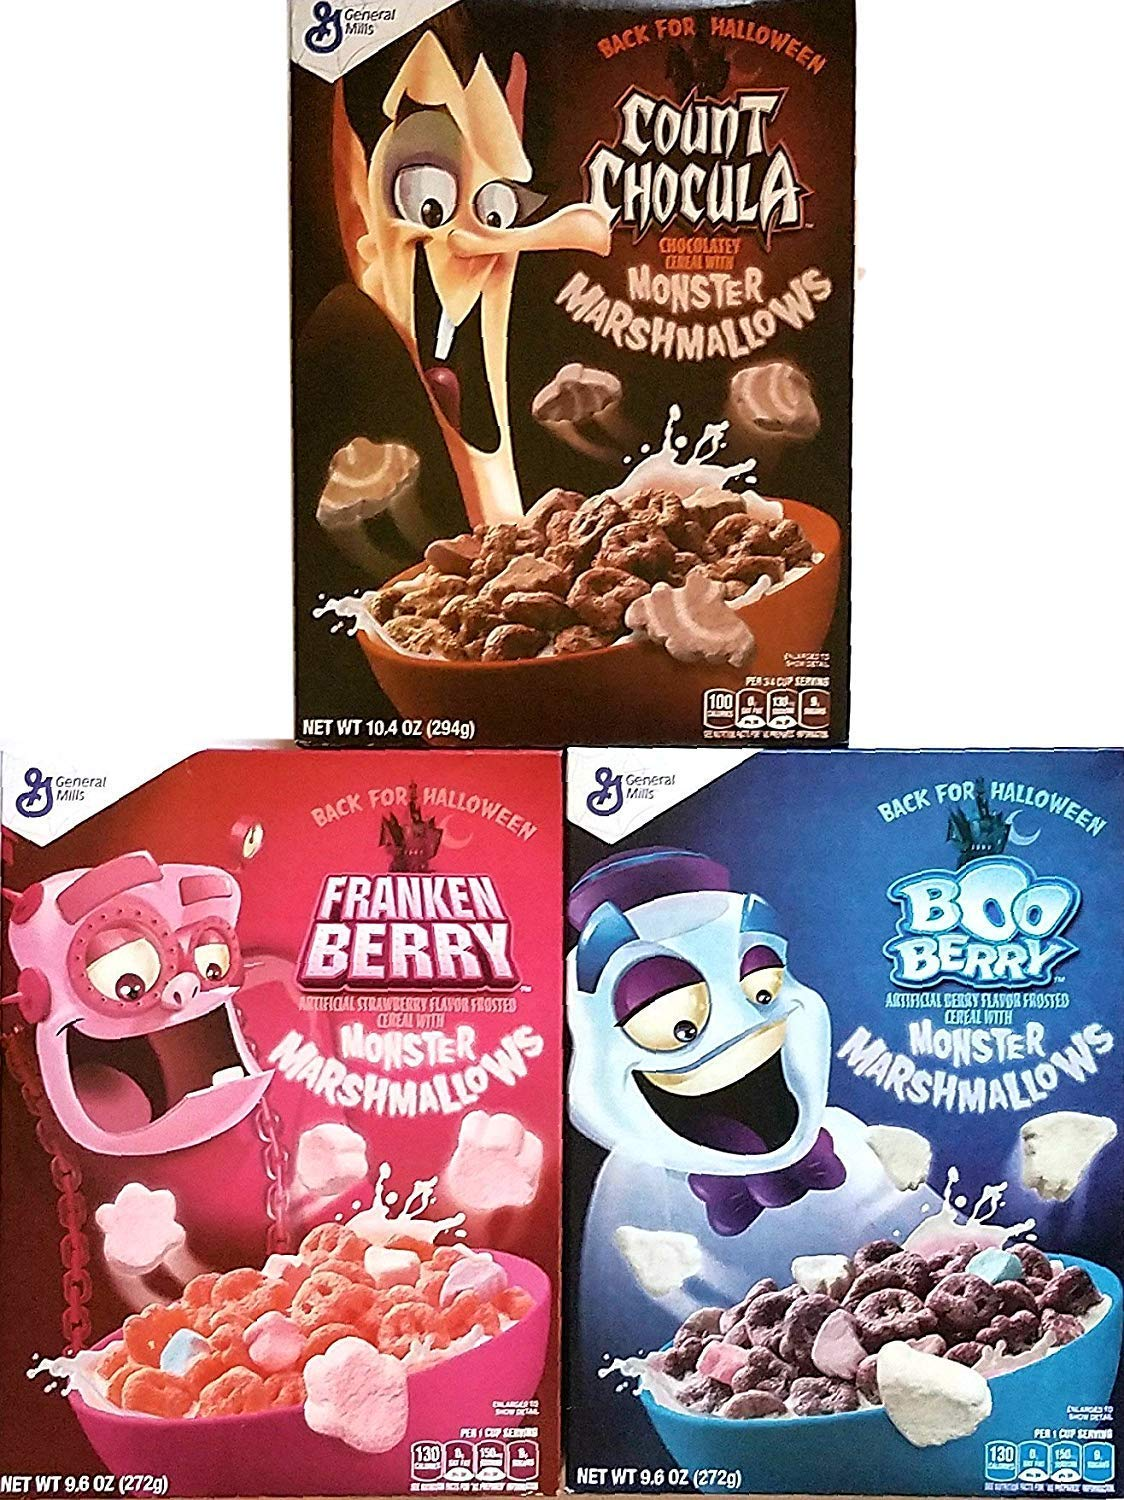 Amazon Com Monster Cereals 2019 3 Pack Count Chocula Frankenberry Boo Berry Back For Halloween Grocery Gourmet Food The best of the three halloween cereals by general mills. monster cereals 2019 3 pack count chocula frankenberry boo berry back for halloween